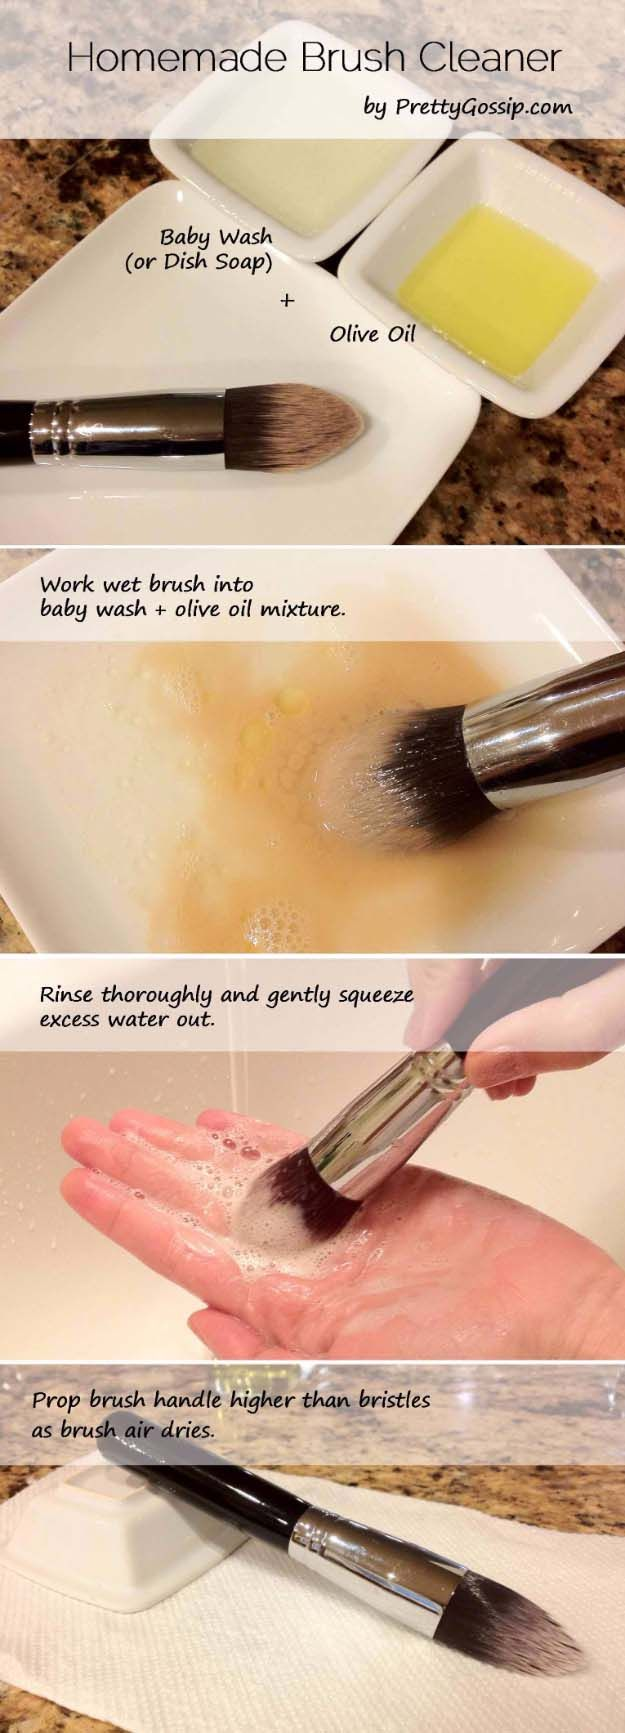 Cool Tips for Your Makeup Brushes - Homemade Makeup Brush Cleaner- Awesome Guides on How To Use Makeup Brushes - Easy Tips and Tutorials for Cleanses, Eye Shadows, Nail Art, Foundation, Mac Eyeshadow, Urban Decay Products and Ideas for All different Types of Faces - thegoddess.com/tutorials-for-makeup-brushes